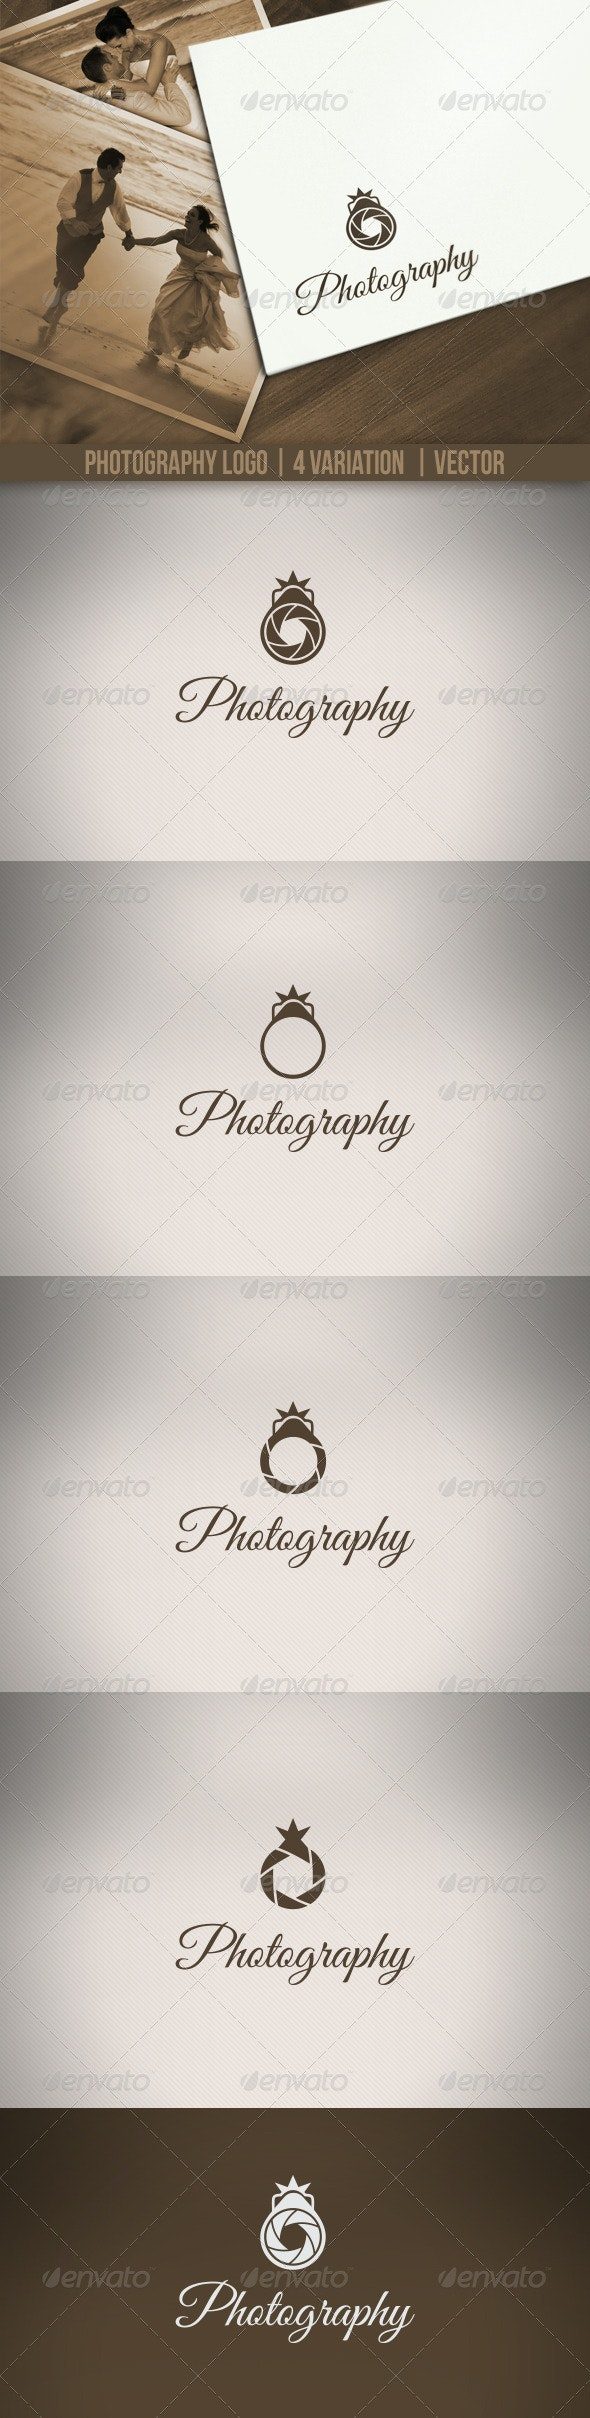 Photography Logos - Vector Abstract